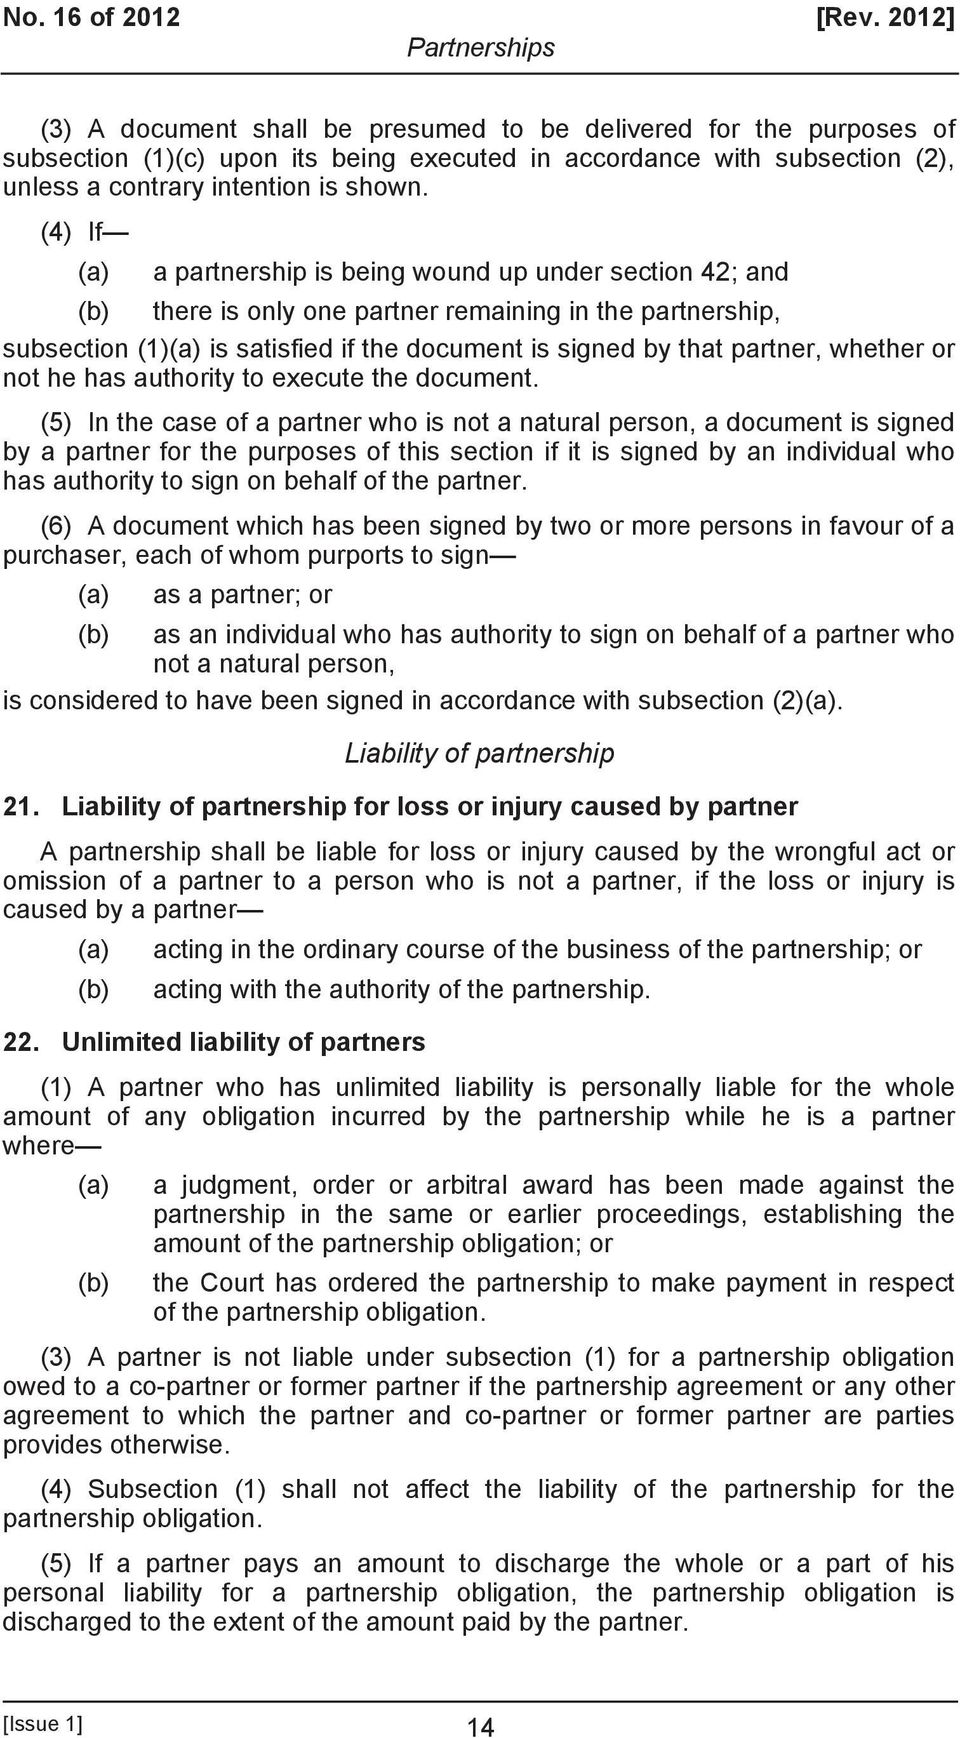 (4) If (a) a partnership is being wound up under section 42; and (b) there is only one partner remaining in the partnership, subsection (1)(a) is satisfied if the document is signed by that partner,